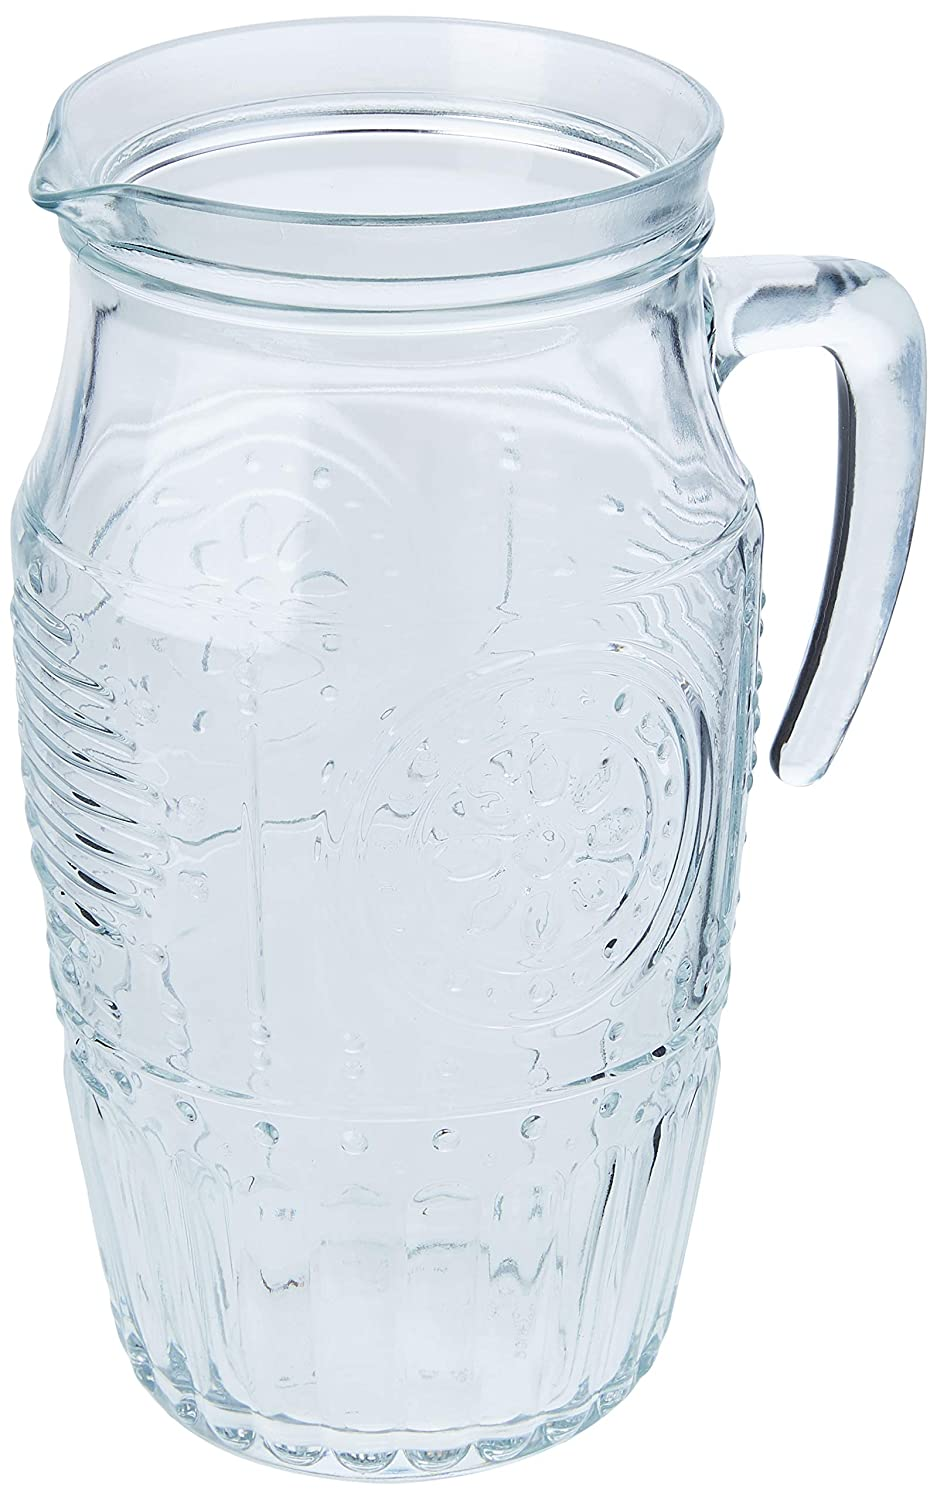 Bormioli Rocco Glass Water Pitcher with Ice Tube, 60.75 Oz Glass, Clear